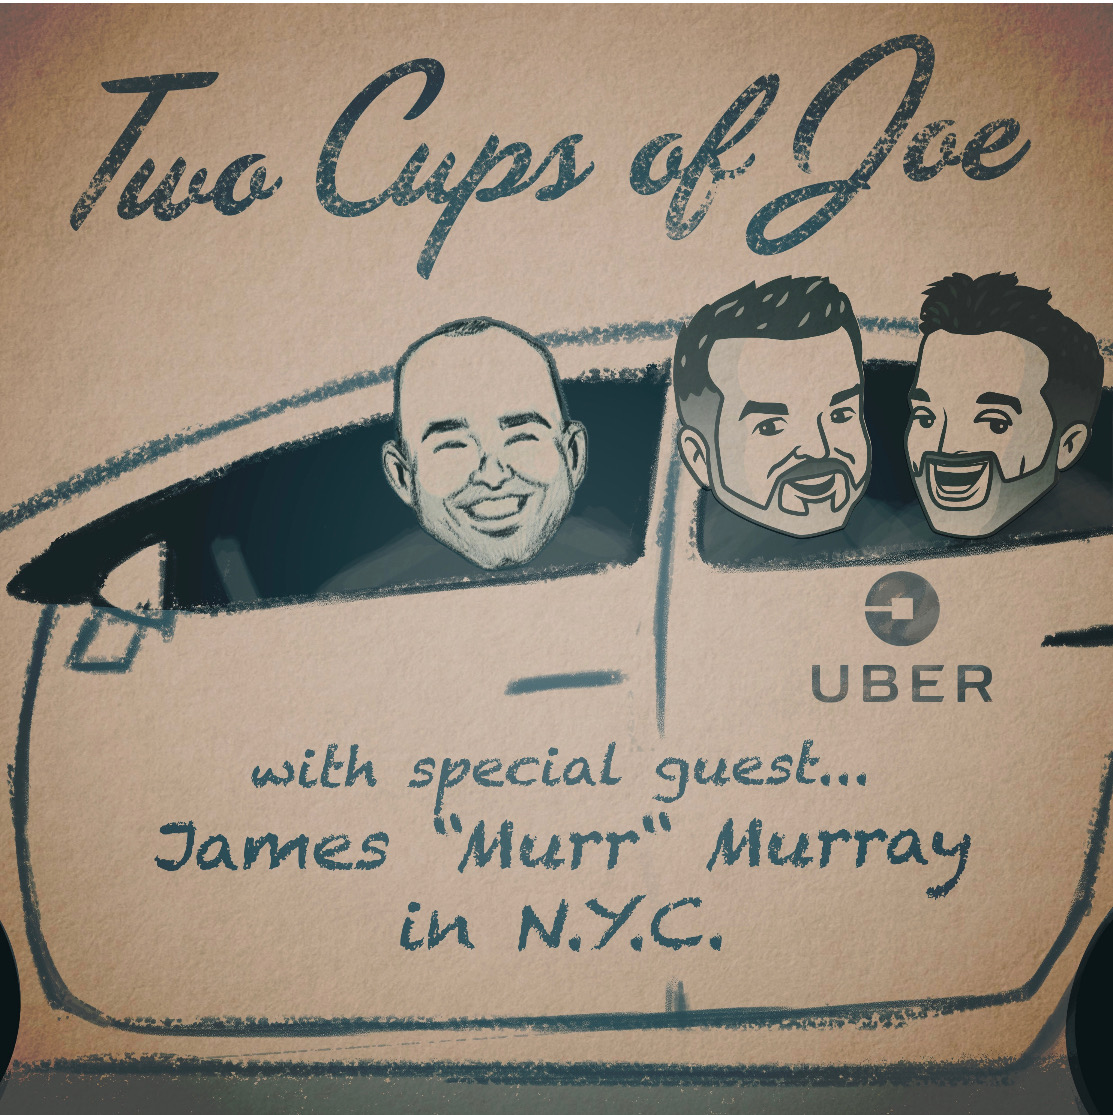 Impractical jokers podcast interview with murr about